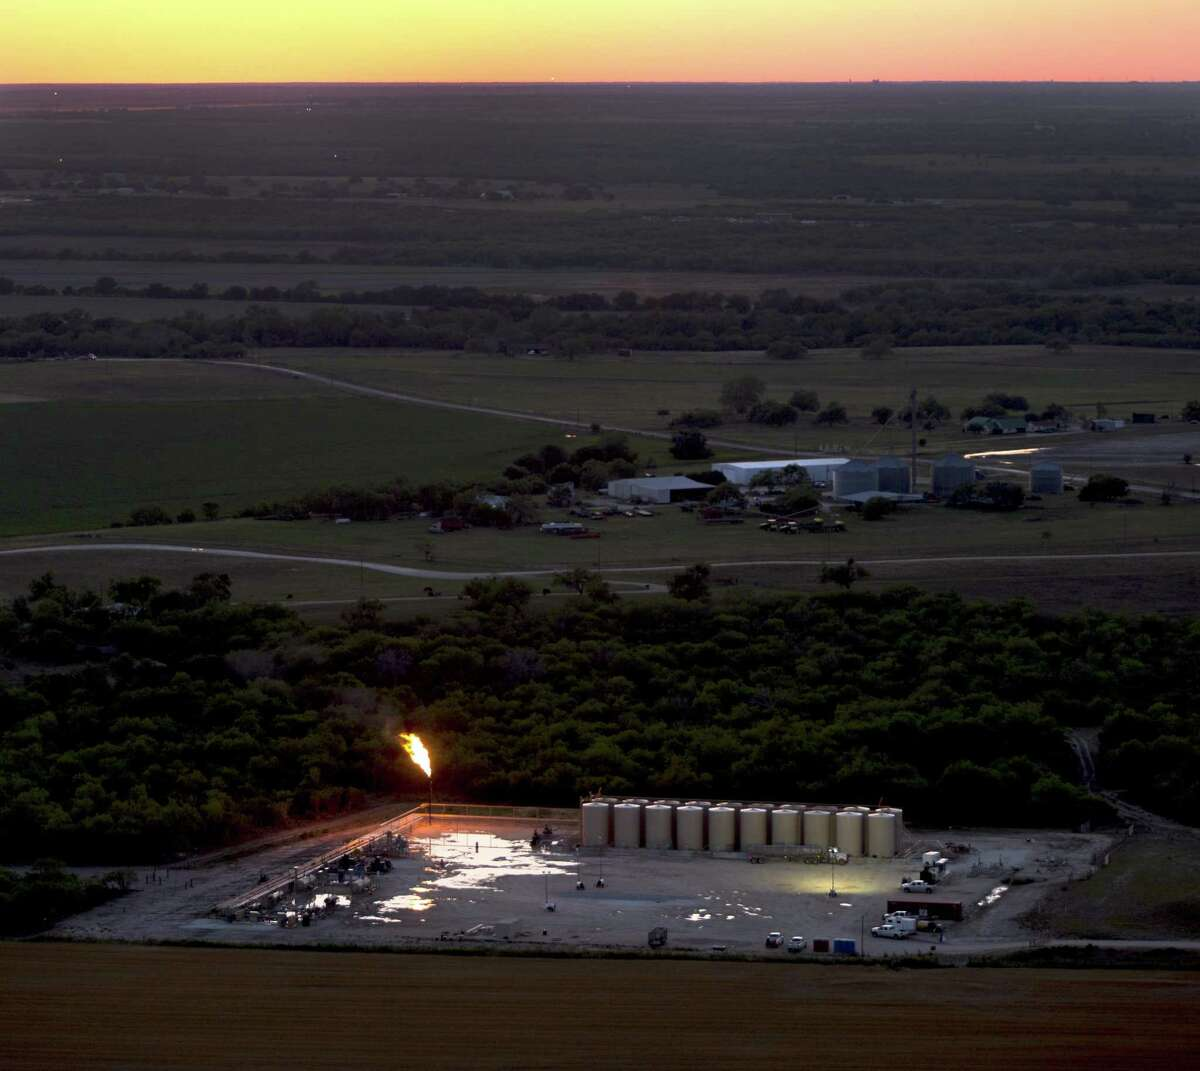 An oil production flare, also called a flare stack, is seen in a Wednesday, May 14, 2014 aerial image taken near Karnes City, Texas. The 400-mile Eagle Ford Shale continues to be among the busiest U.S. oil fields. The Eagle Ford pumps 1.2 million barrels of oil per day, and last week 70 drilling rigs were at work in the region, according to the service firm Baker Hughes.